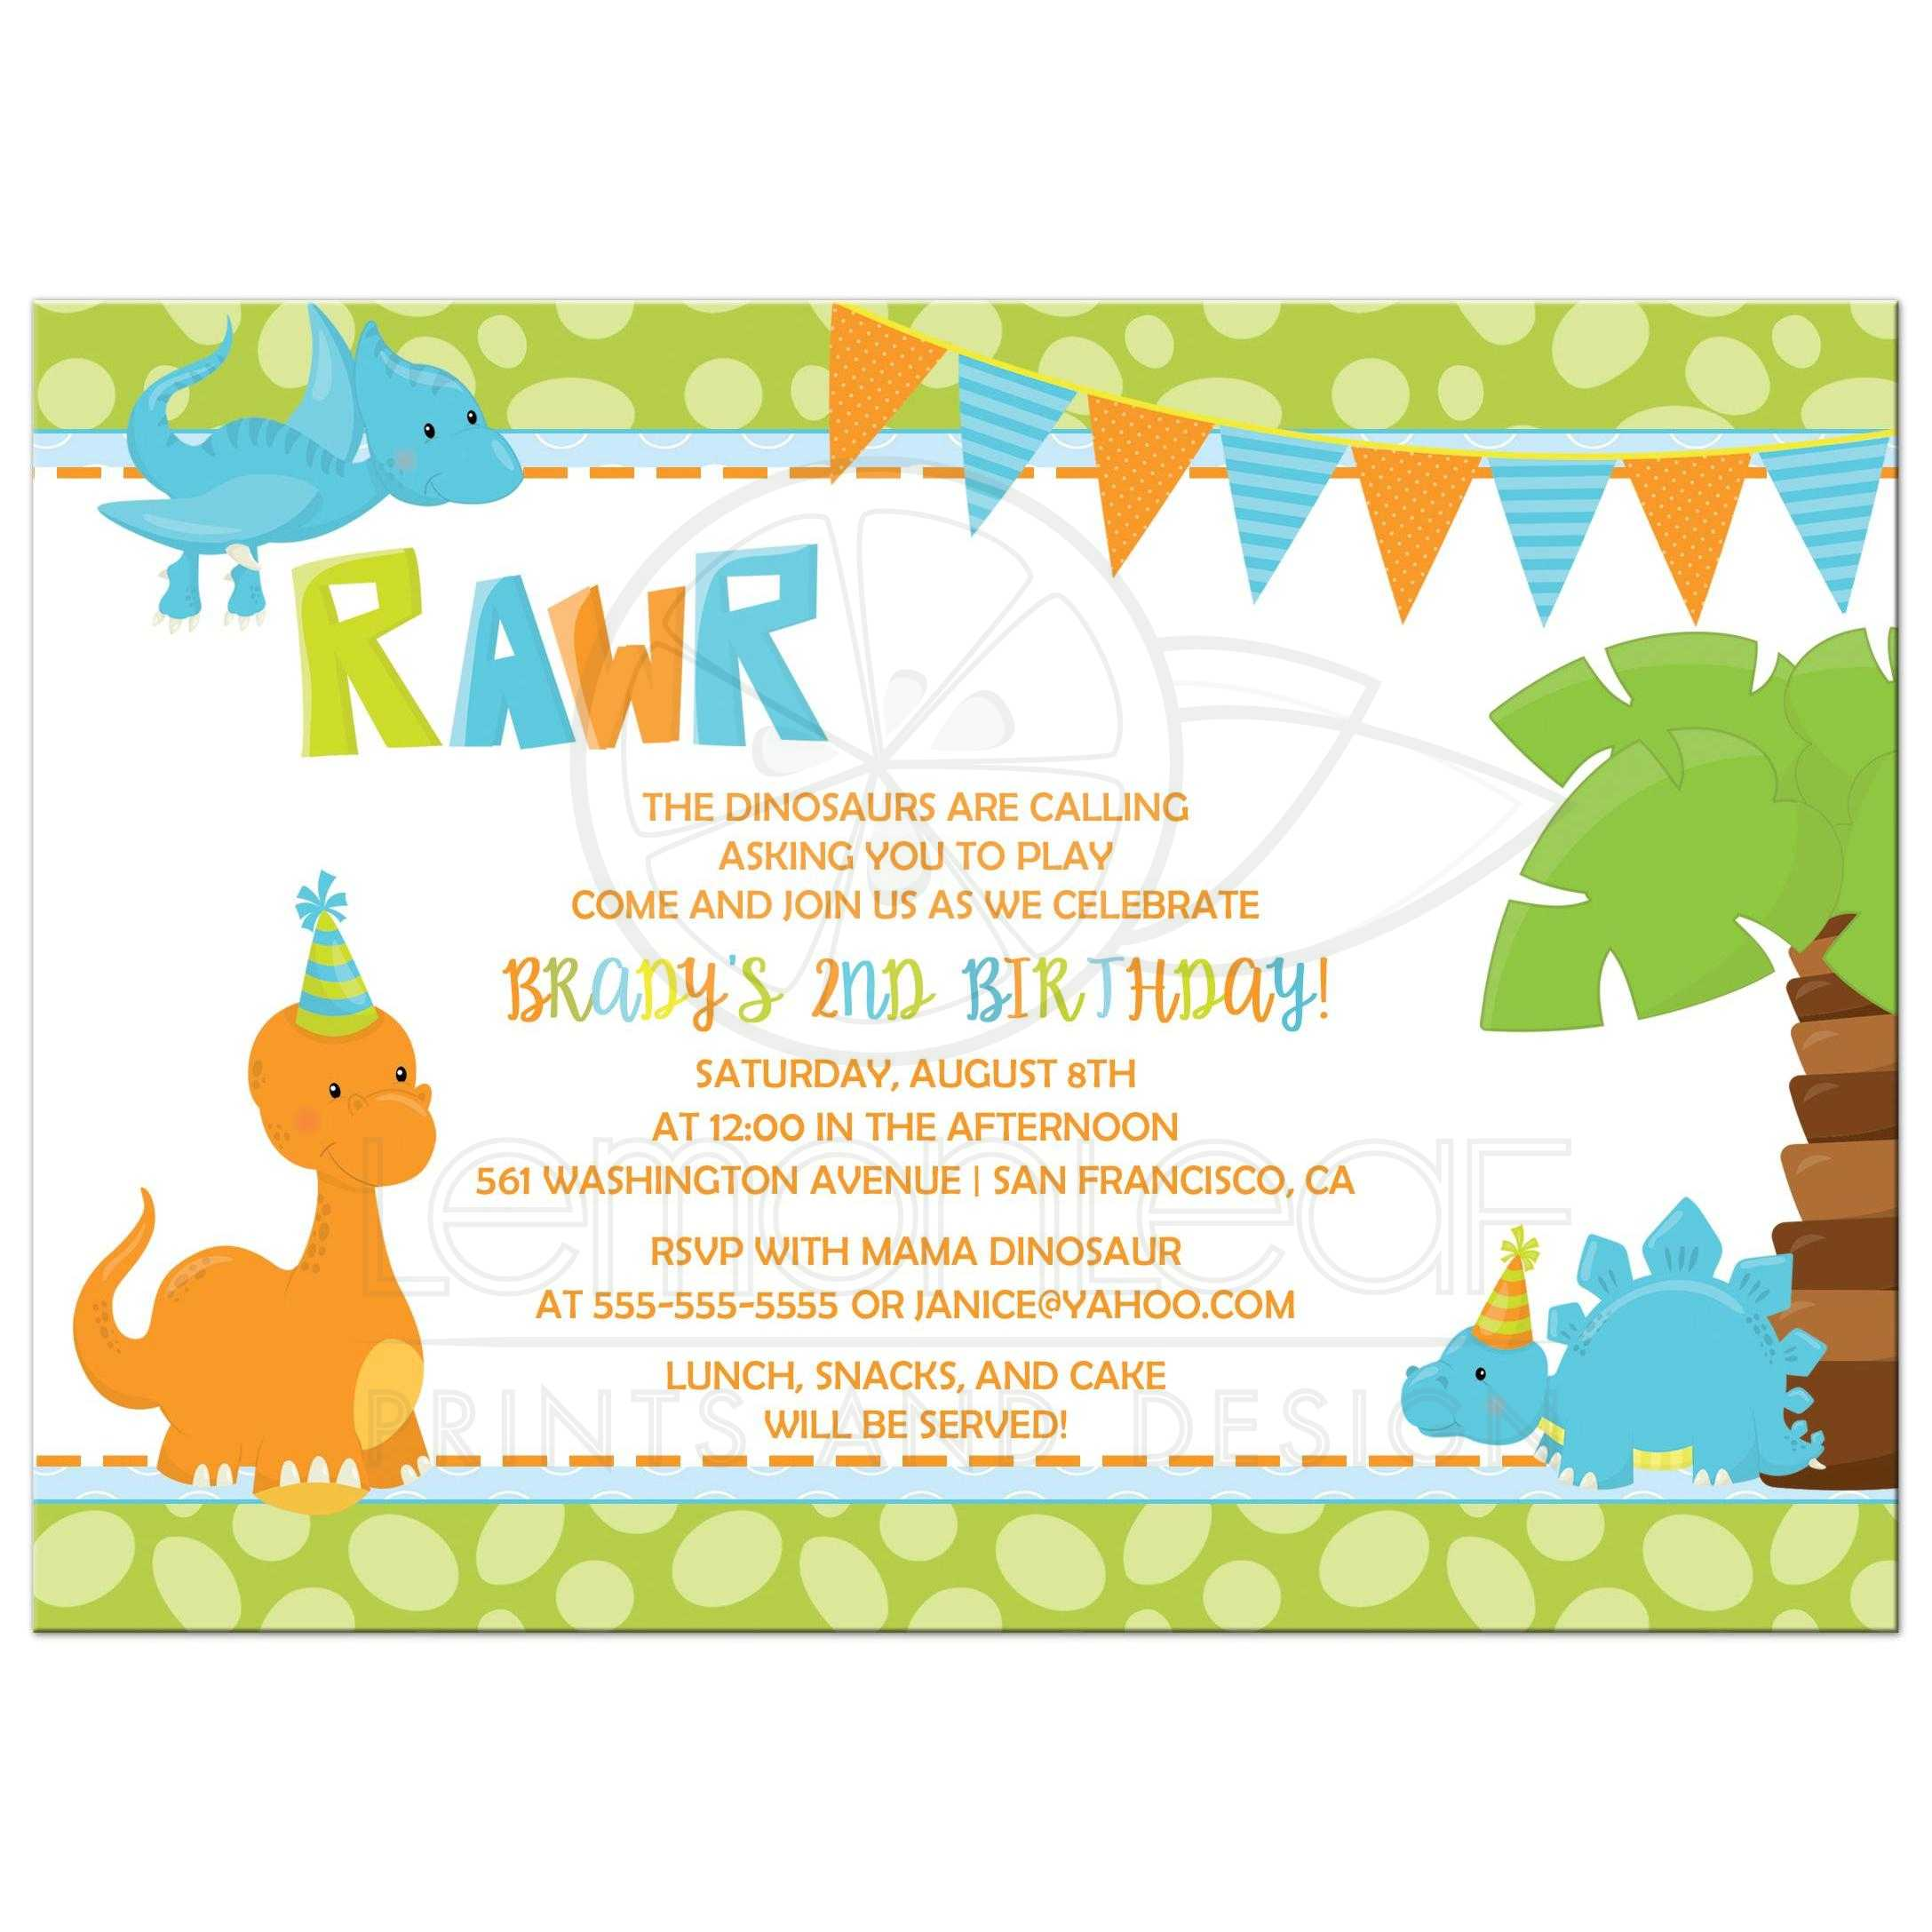 House Party Invitation with perfect invitation template